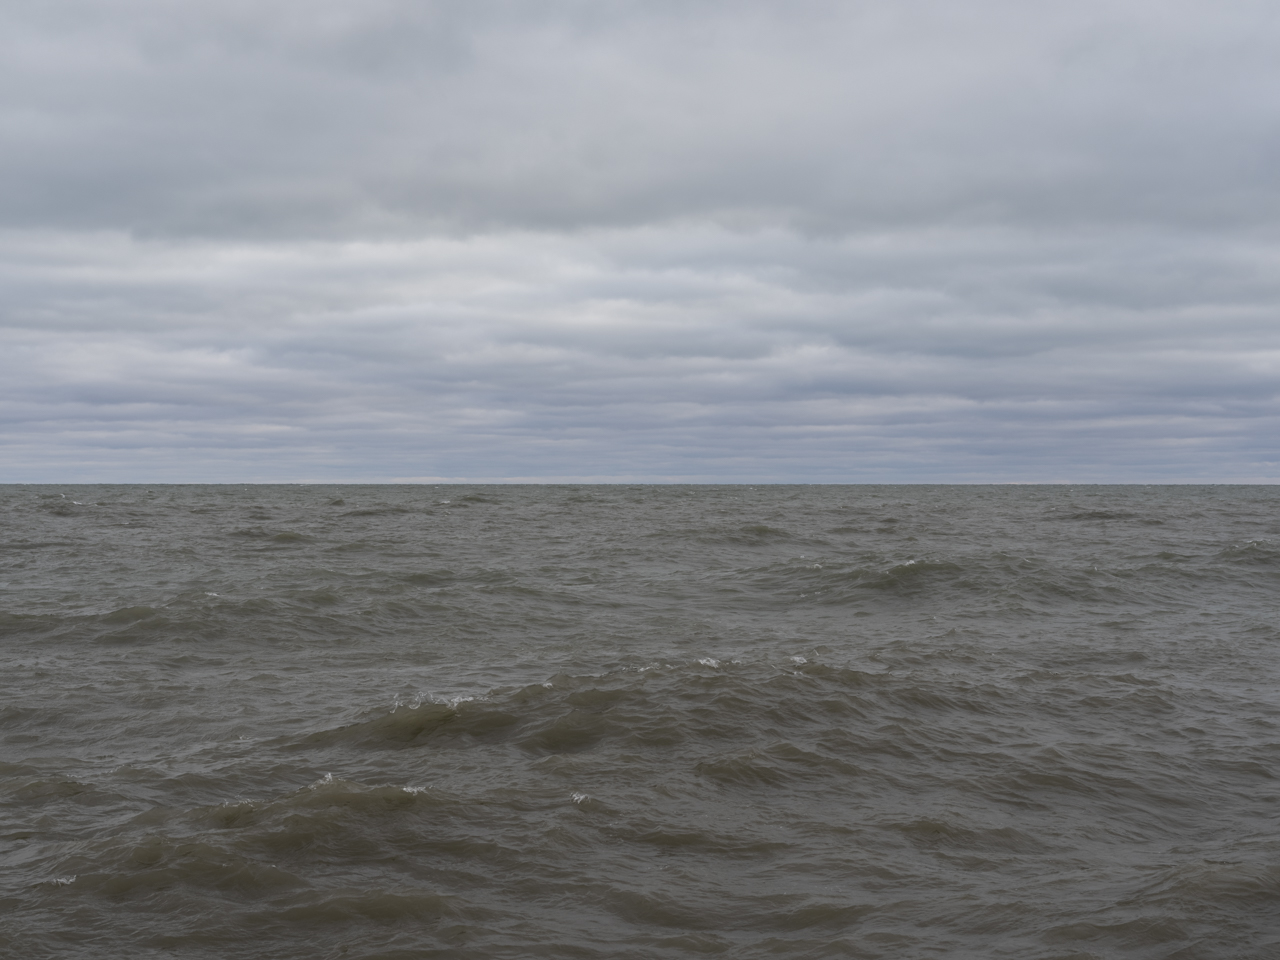 the lake is starting to churn with waves forming and heavy clouds in the sky overhead